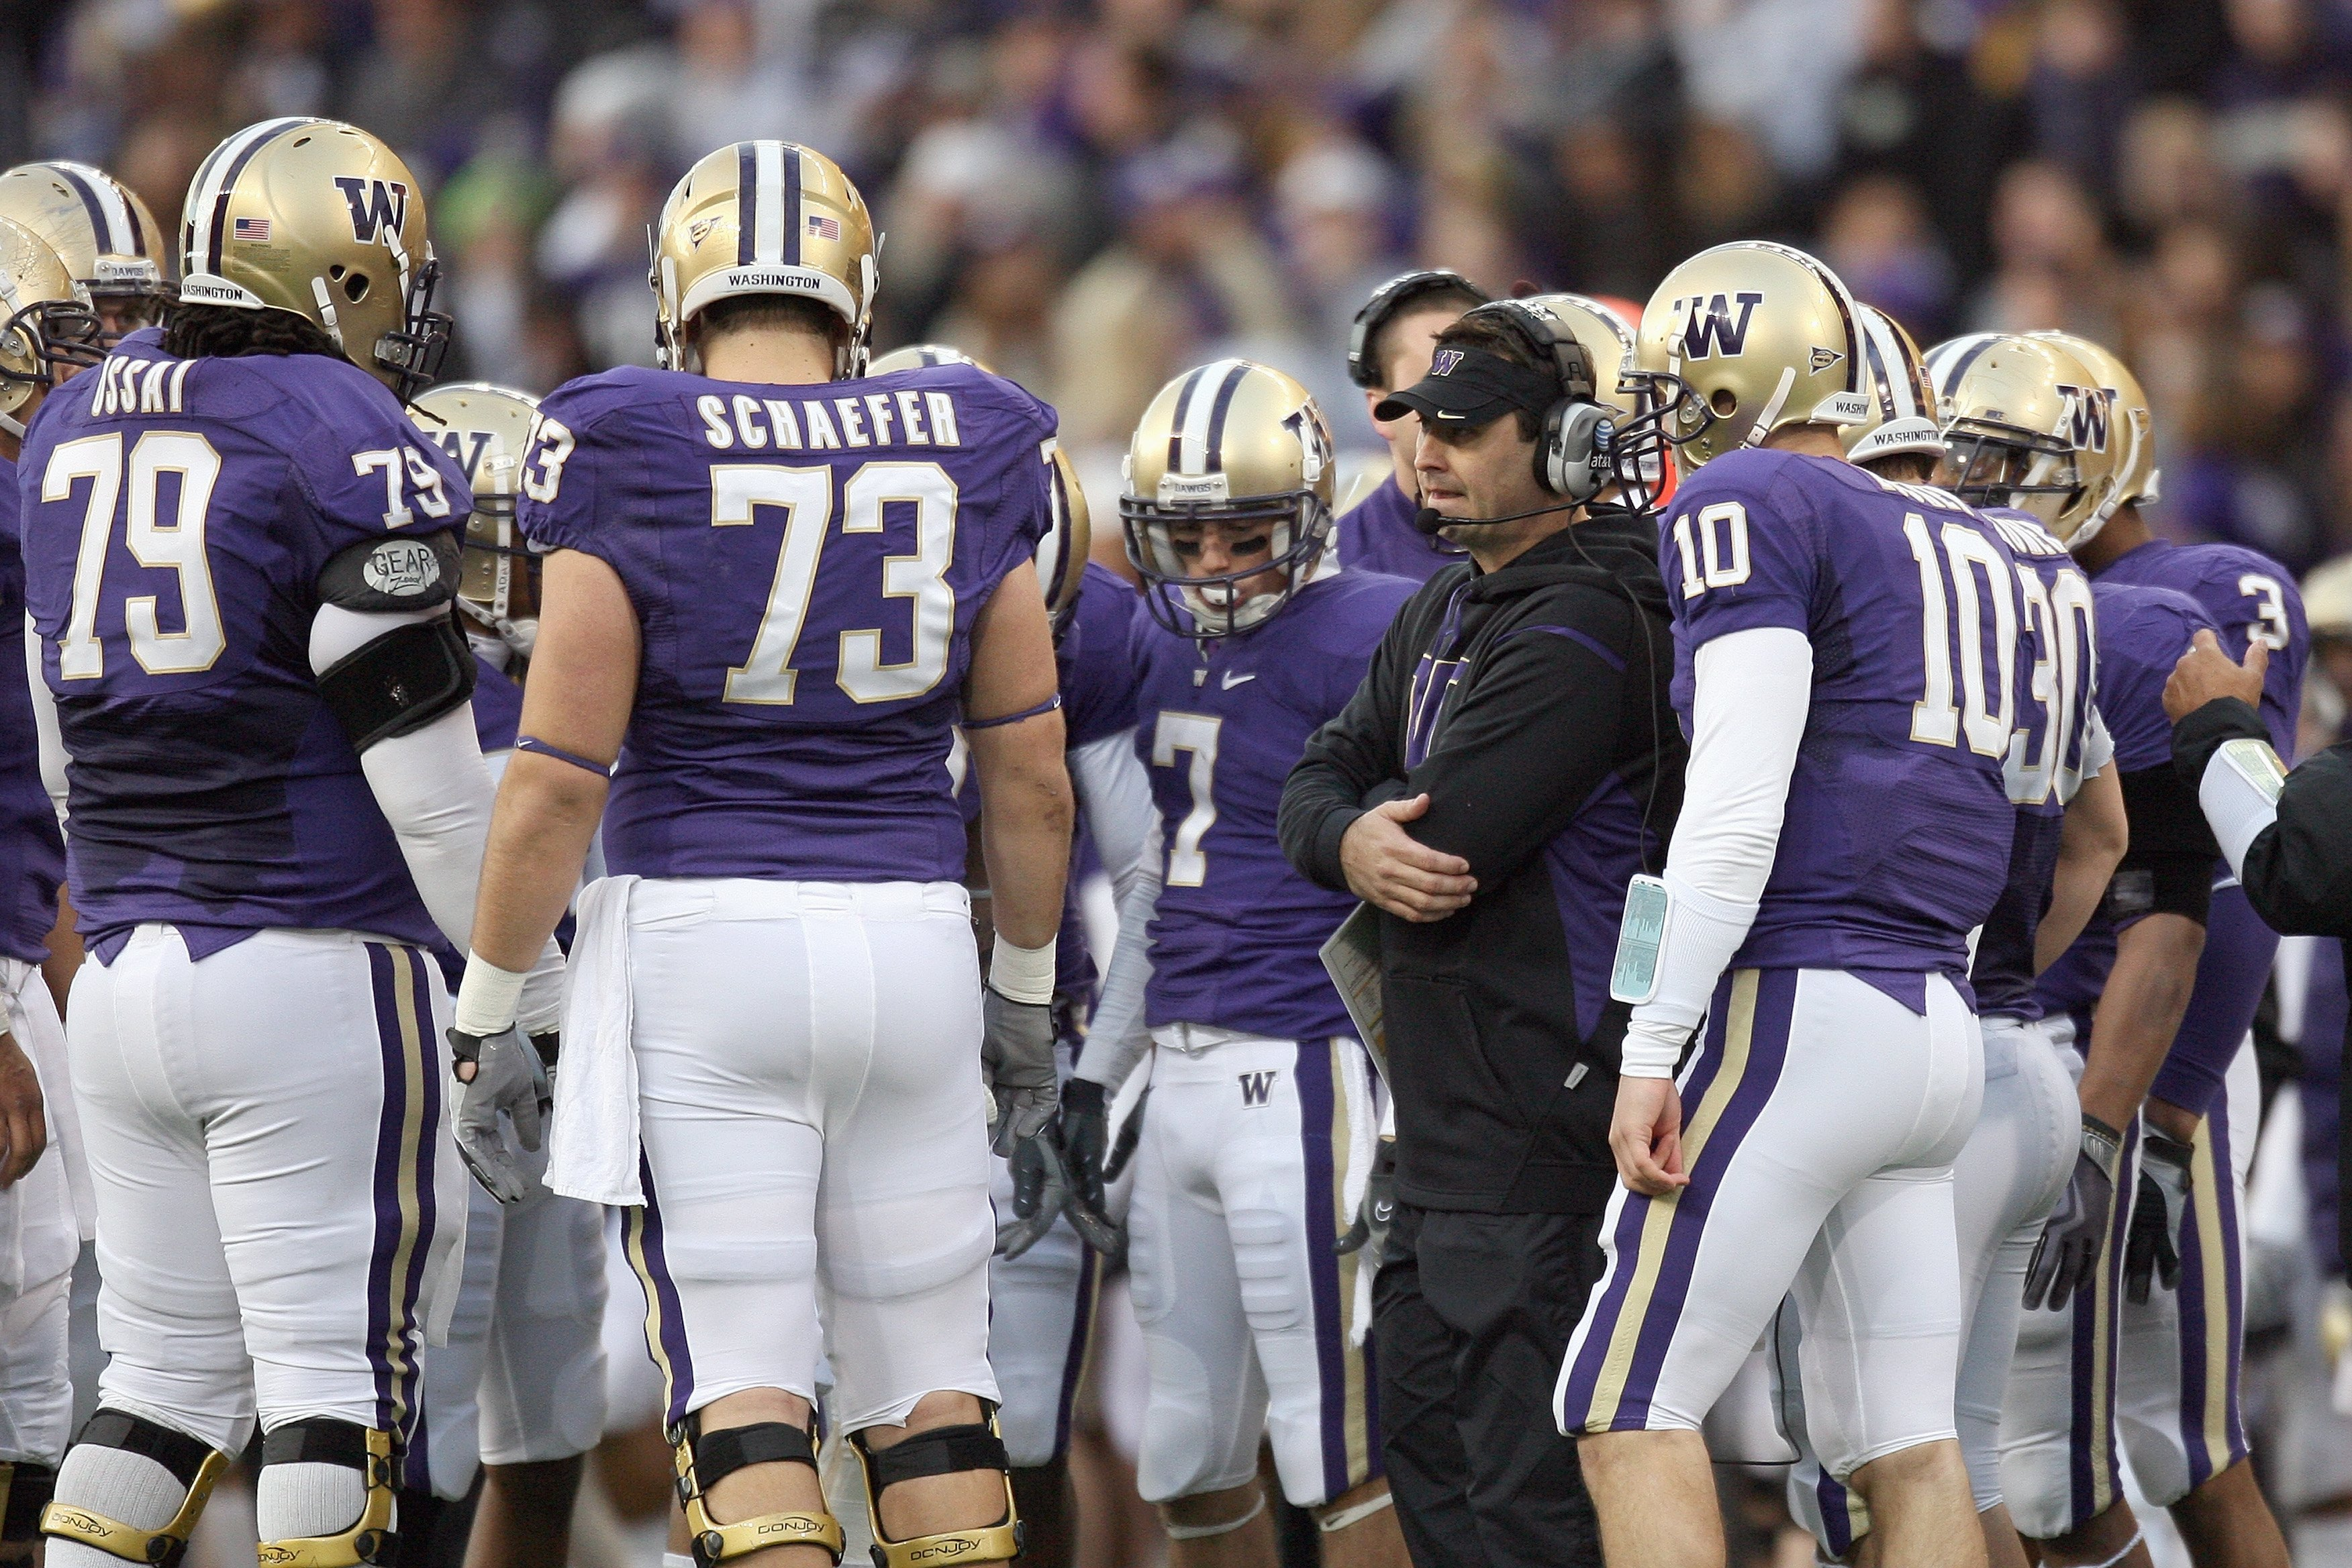 SEATTLE - DECEMBER 05:  Head coach Steve Sarkisian of the Washington Huskies talks to the team during game against the California Bears on December 5, 2009 at Husky Stadium in Seattle, Washington. The Huskies defeated the Bears 42-10. (Photo by Otto Greul